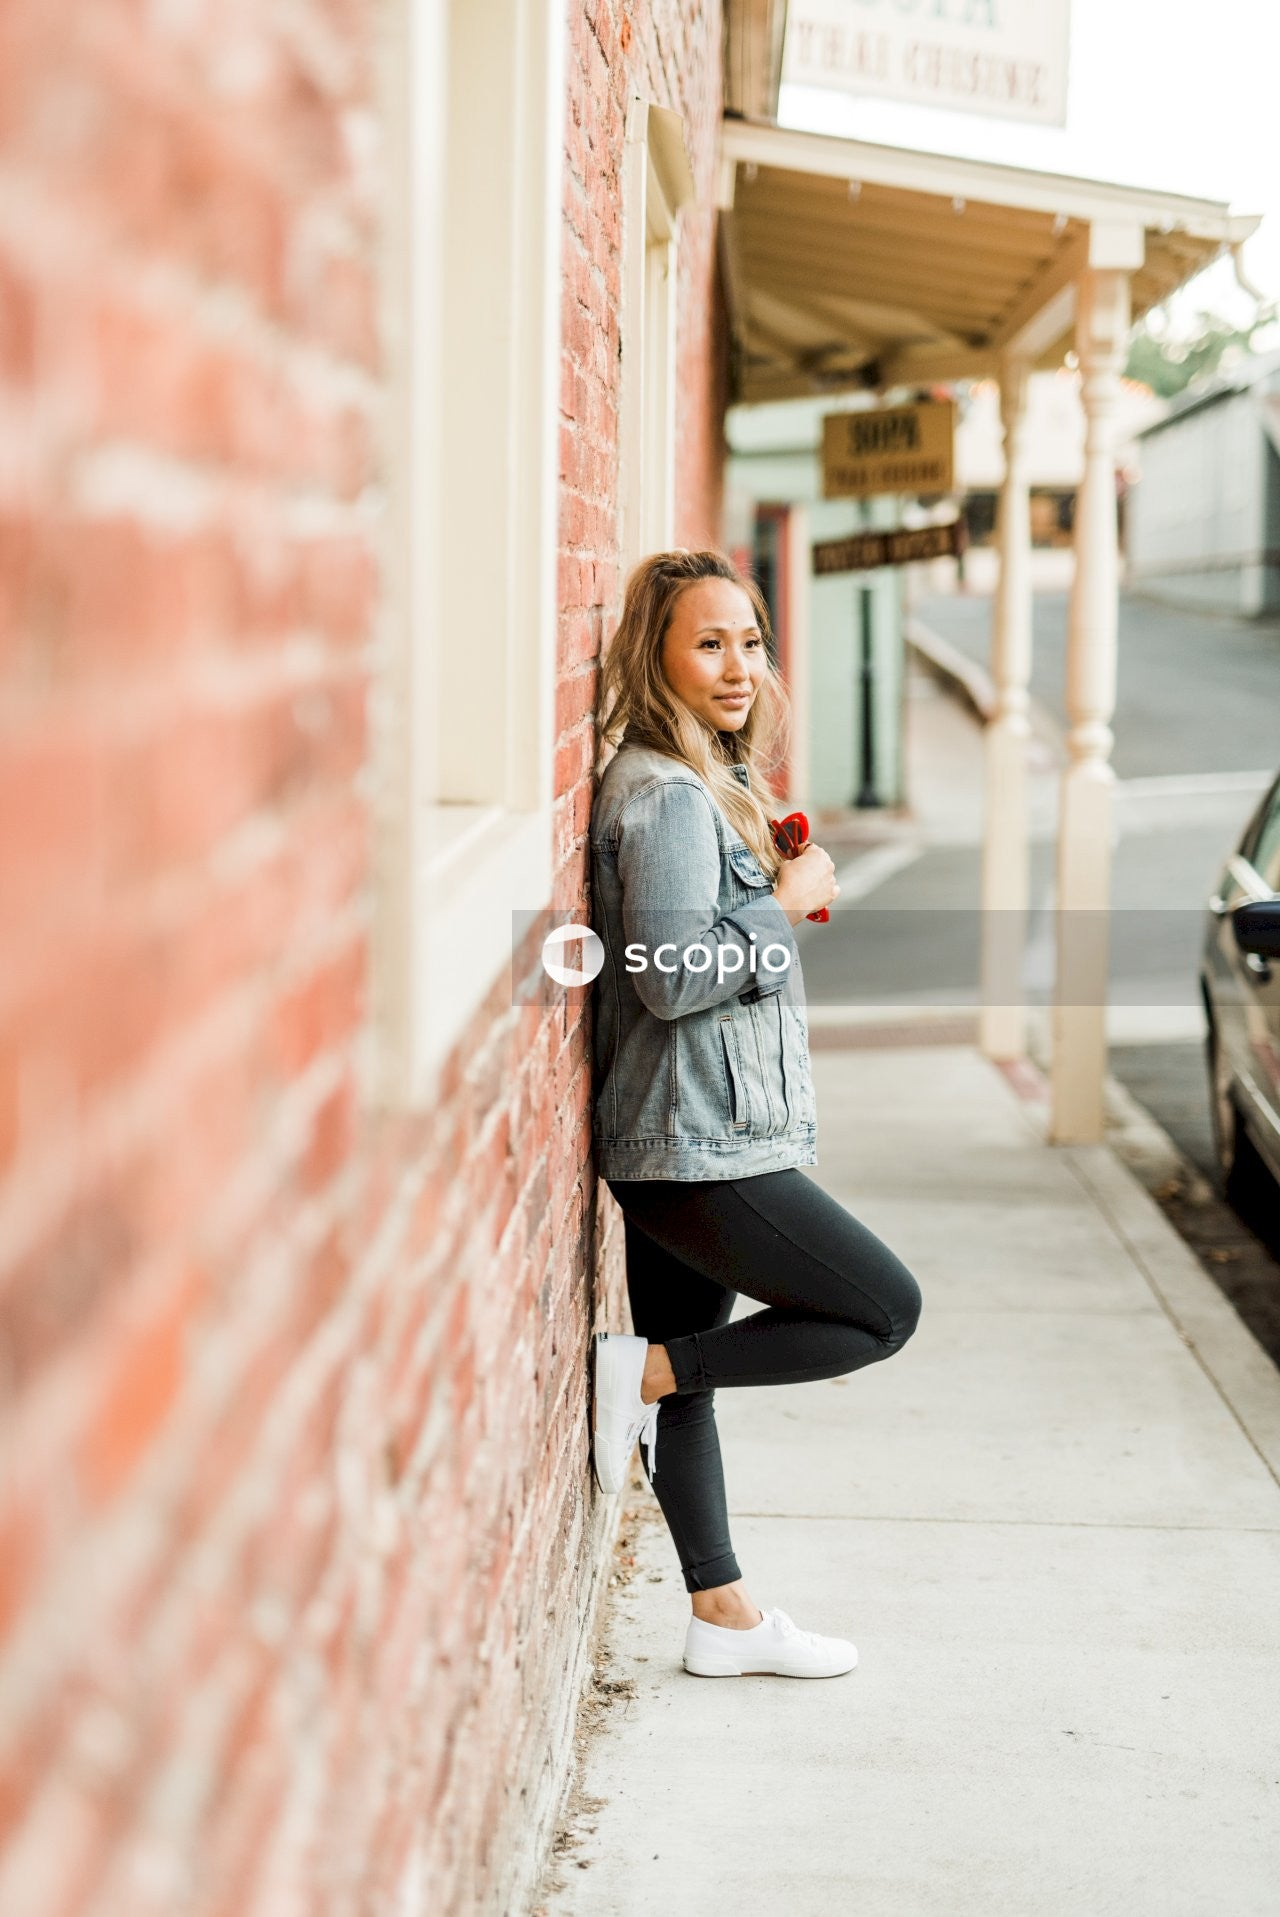 Woman in gray long sleeve shirt and black pants leaning on red brick wall